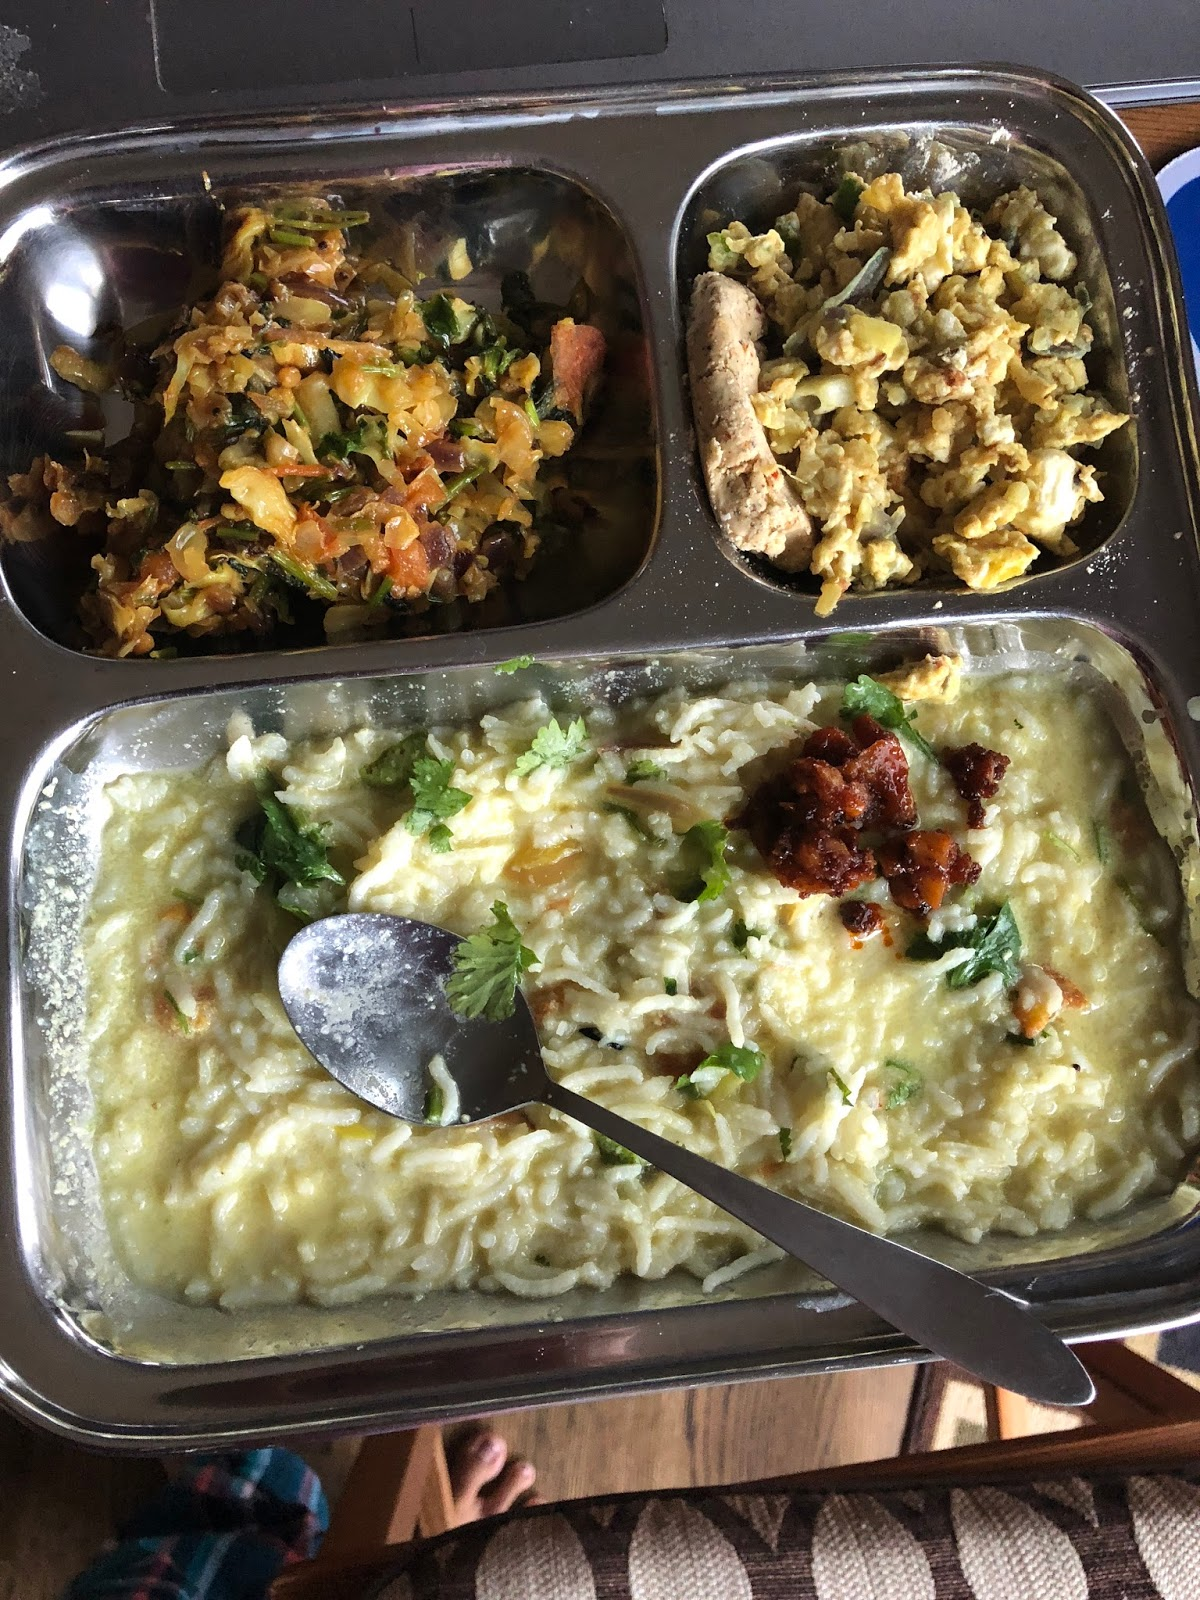 Gestational diabetes food options indian vegetarian eggatarian i always used a measuring cup to measure the rice to about loosely packed 1 cup the side dishes should include good amount of proteins to keep us full for forumfinder Choice Image